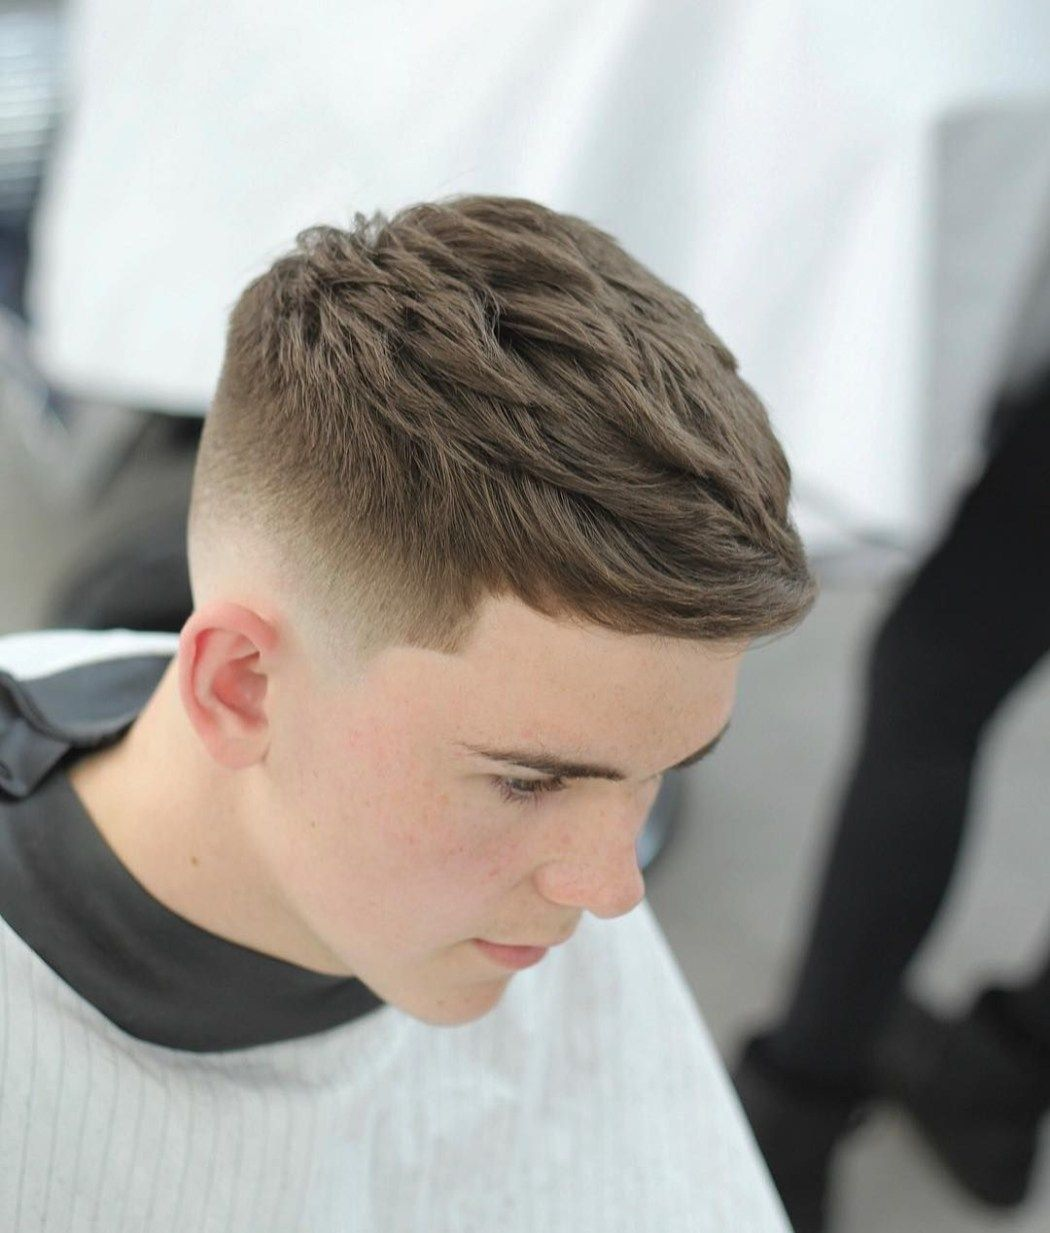 Best Haircuts For Men 2018 Top And Trends Hairstyle 16 Men Hair